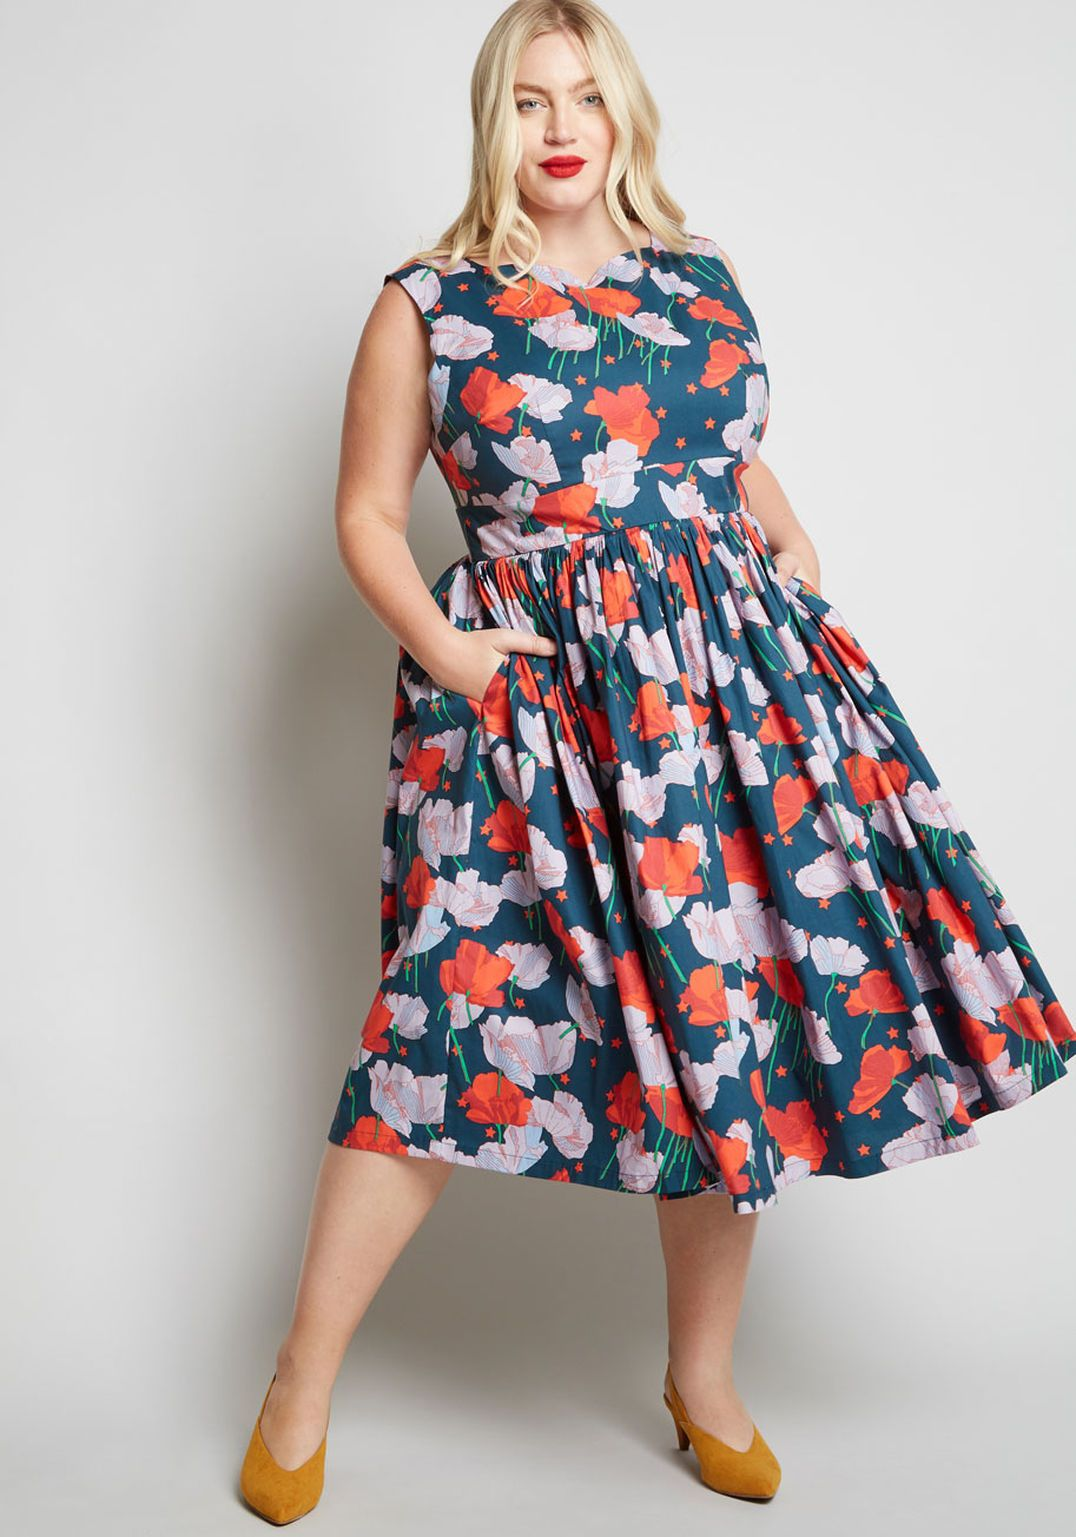 Fabulous Fit And Flare Dress With Pockets Plus Size Dresses Flare Dress Dresses